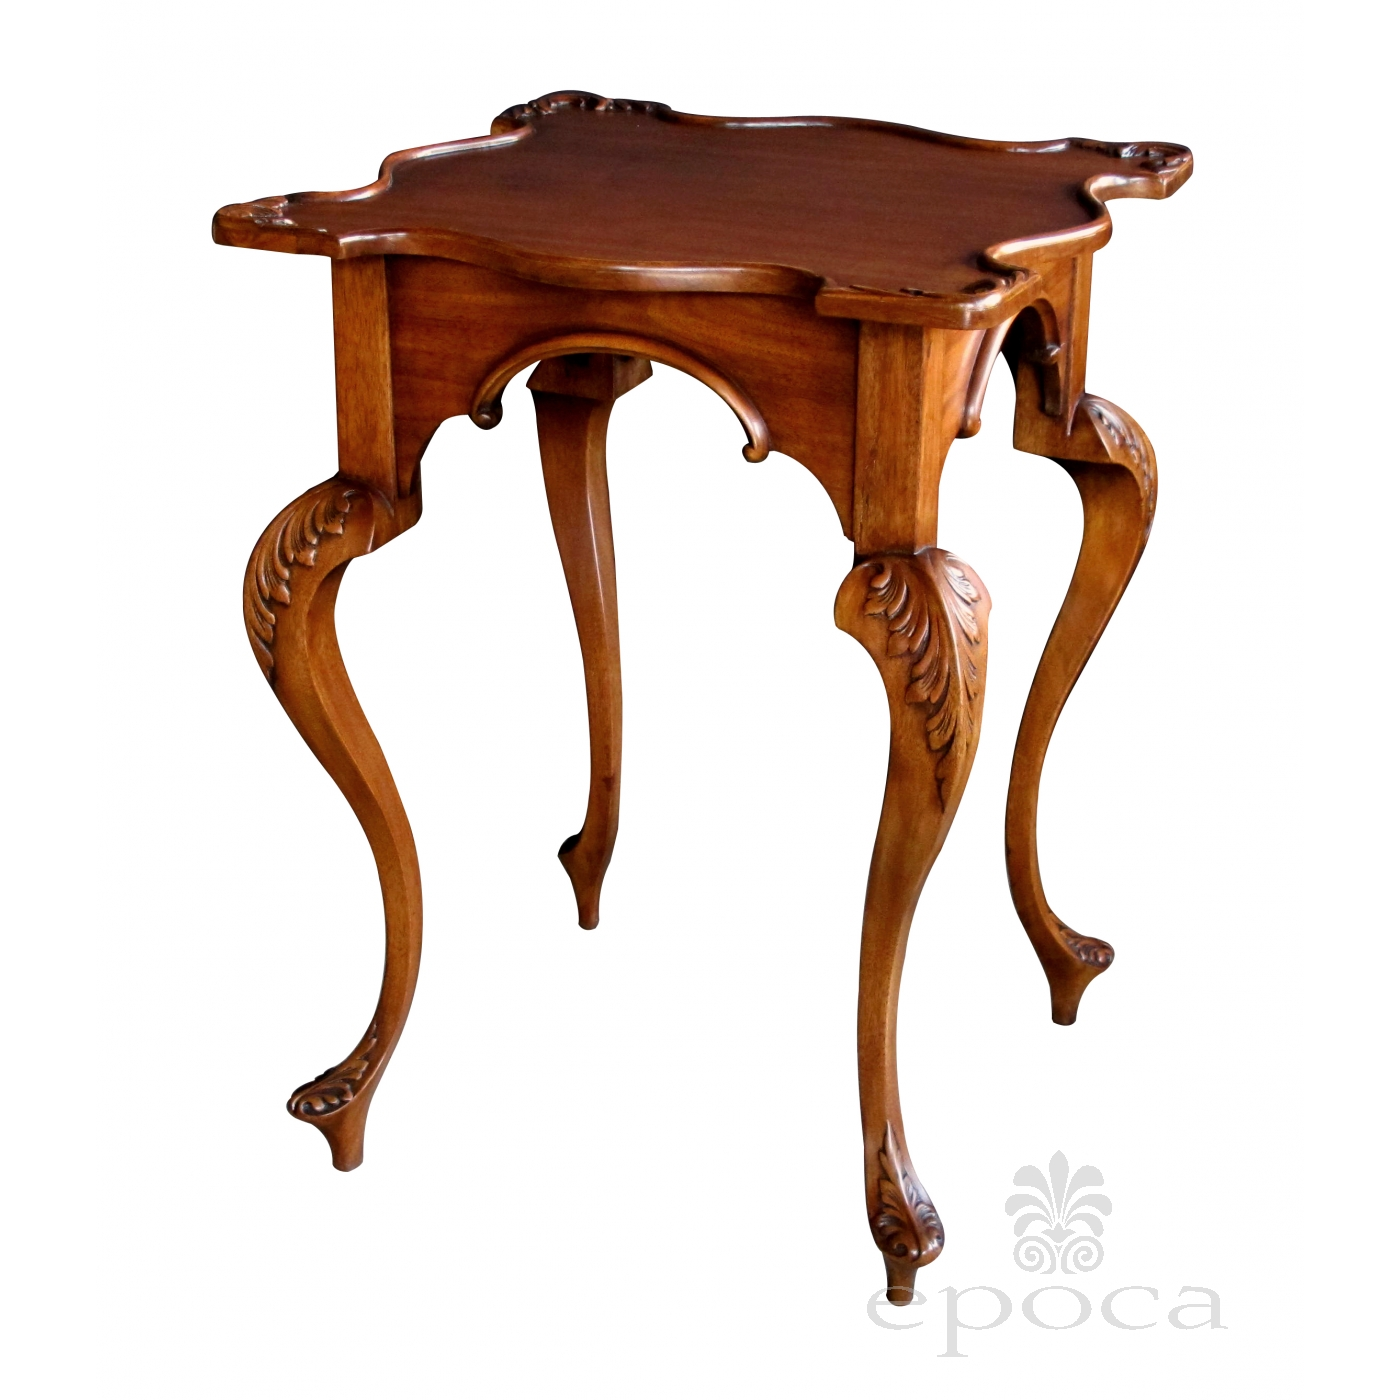 a graceful english george II style carved mahogany side  : 35150 from www.epocasf.com size 1400 x 1400 jpeg 659kB